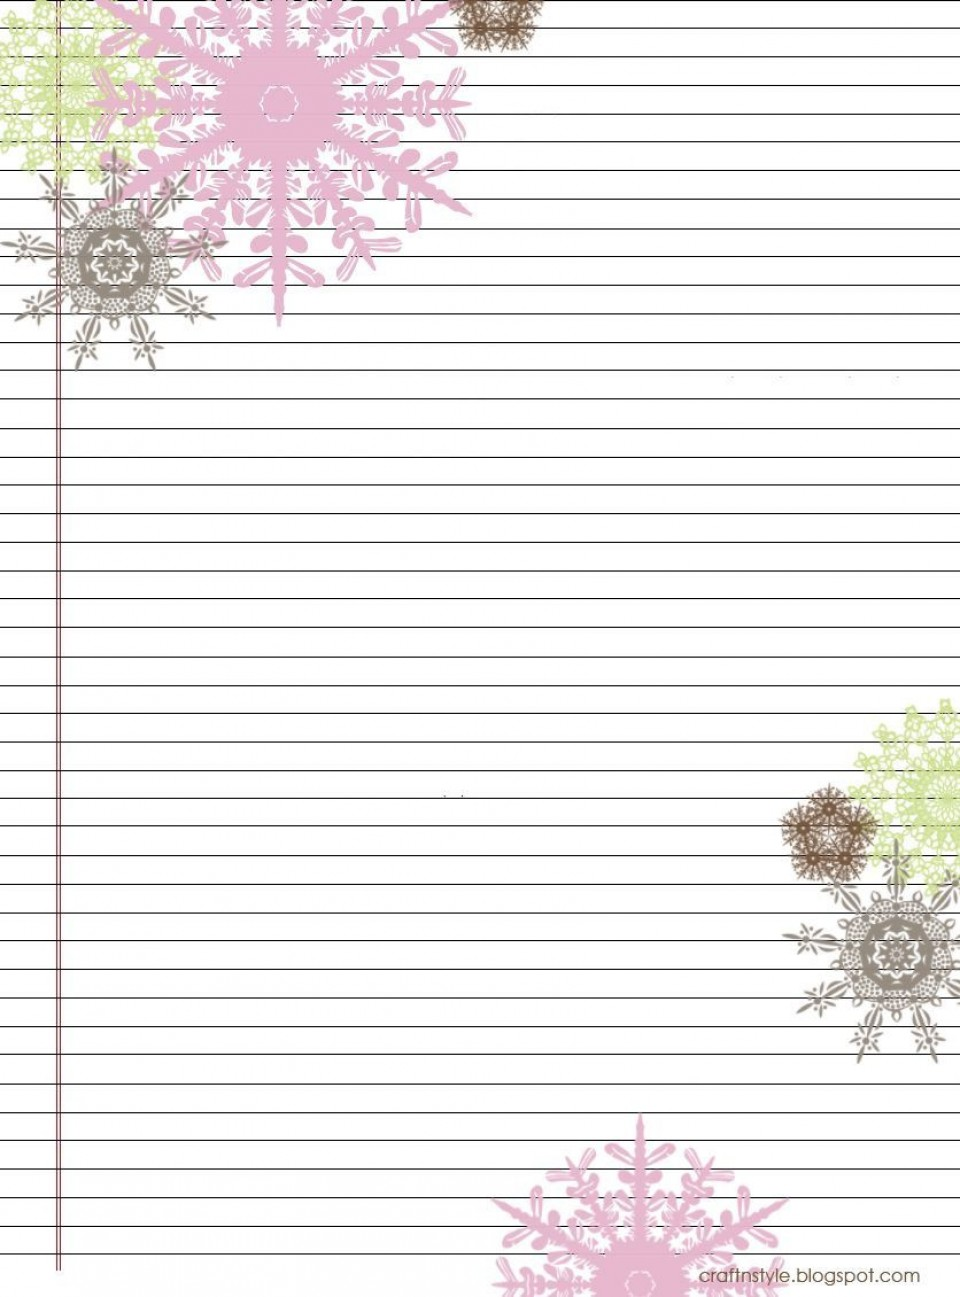 004 Stirring Free Printable Stationery Paper Template Inspiration 960